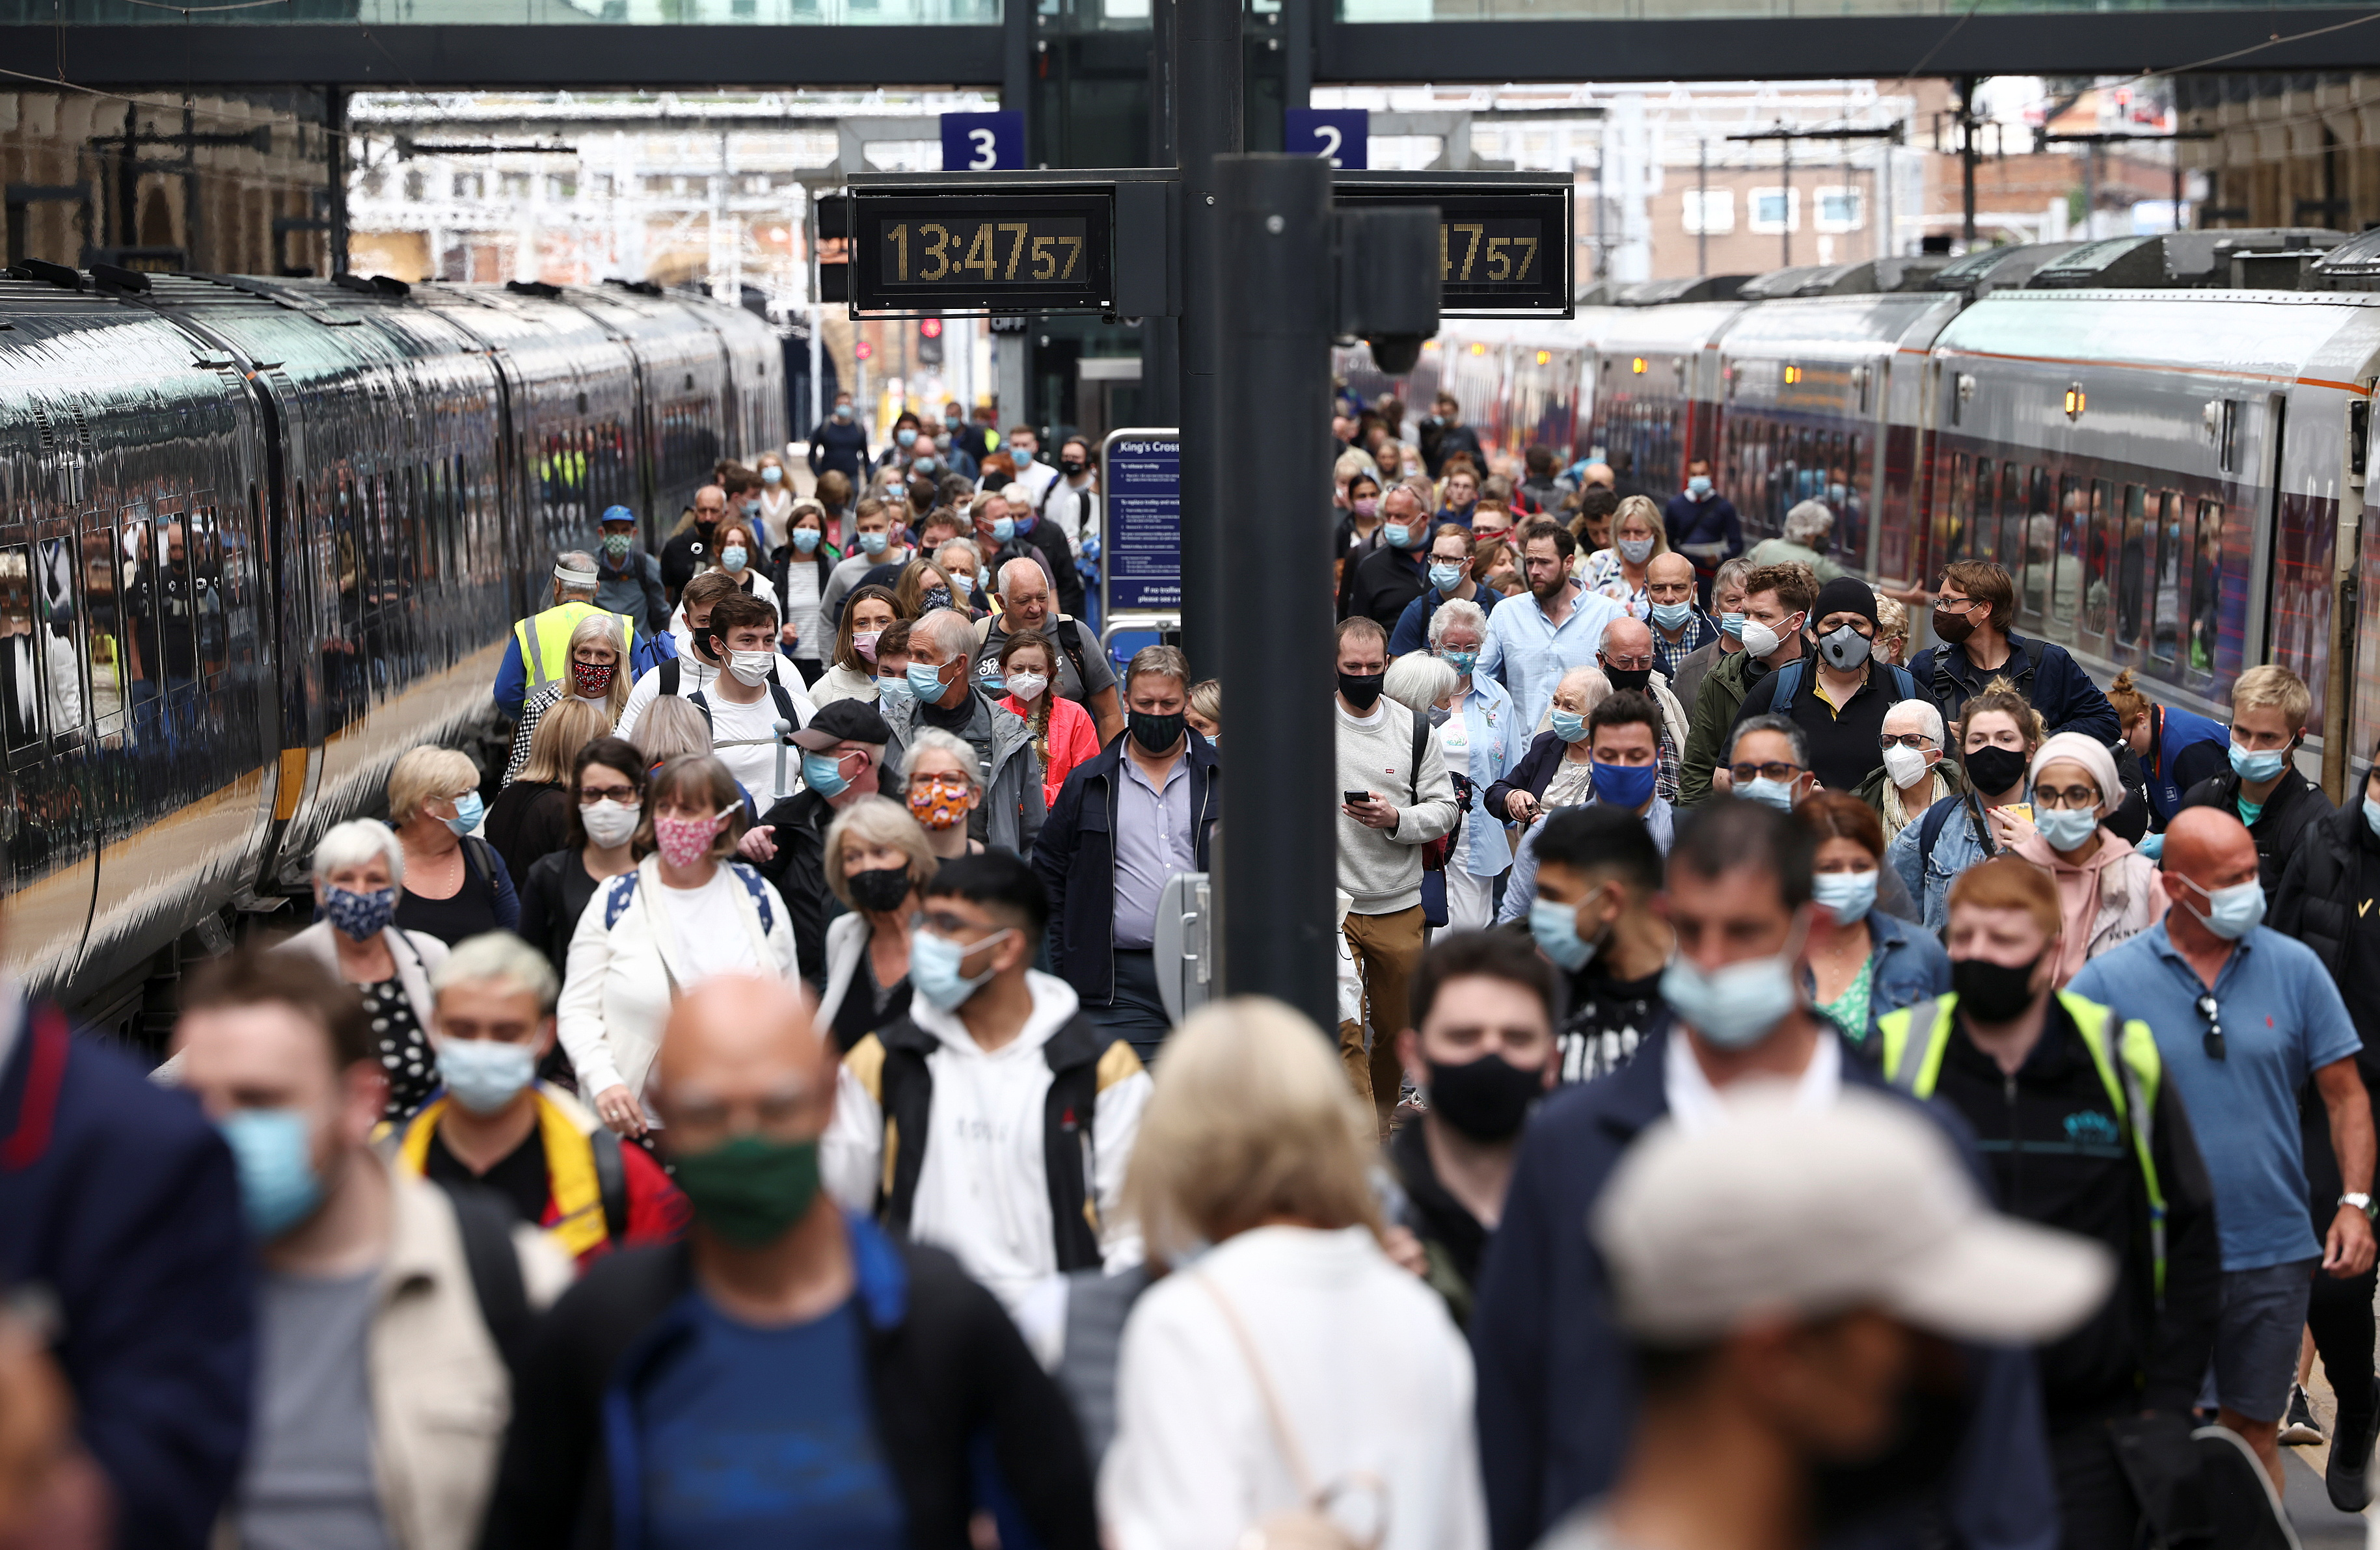 People wearing protective face masks walk along a platform at King's Cross Station, amid the coronavirus disease (COVID-19) outbreak in London, Britain, July 12, 2021. REUTERS/Henry Nicholls